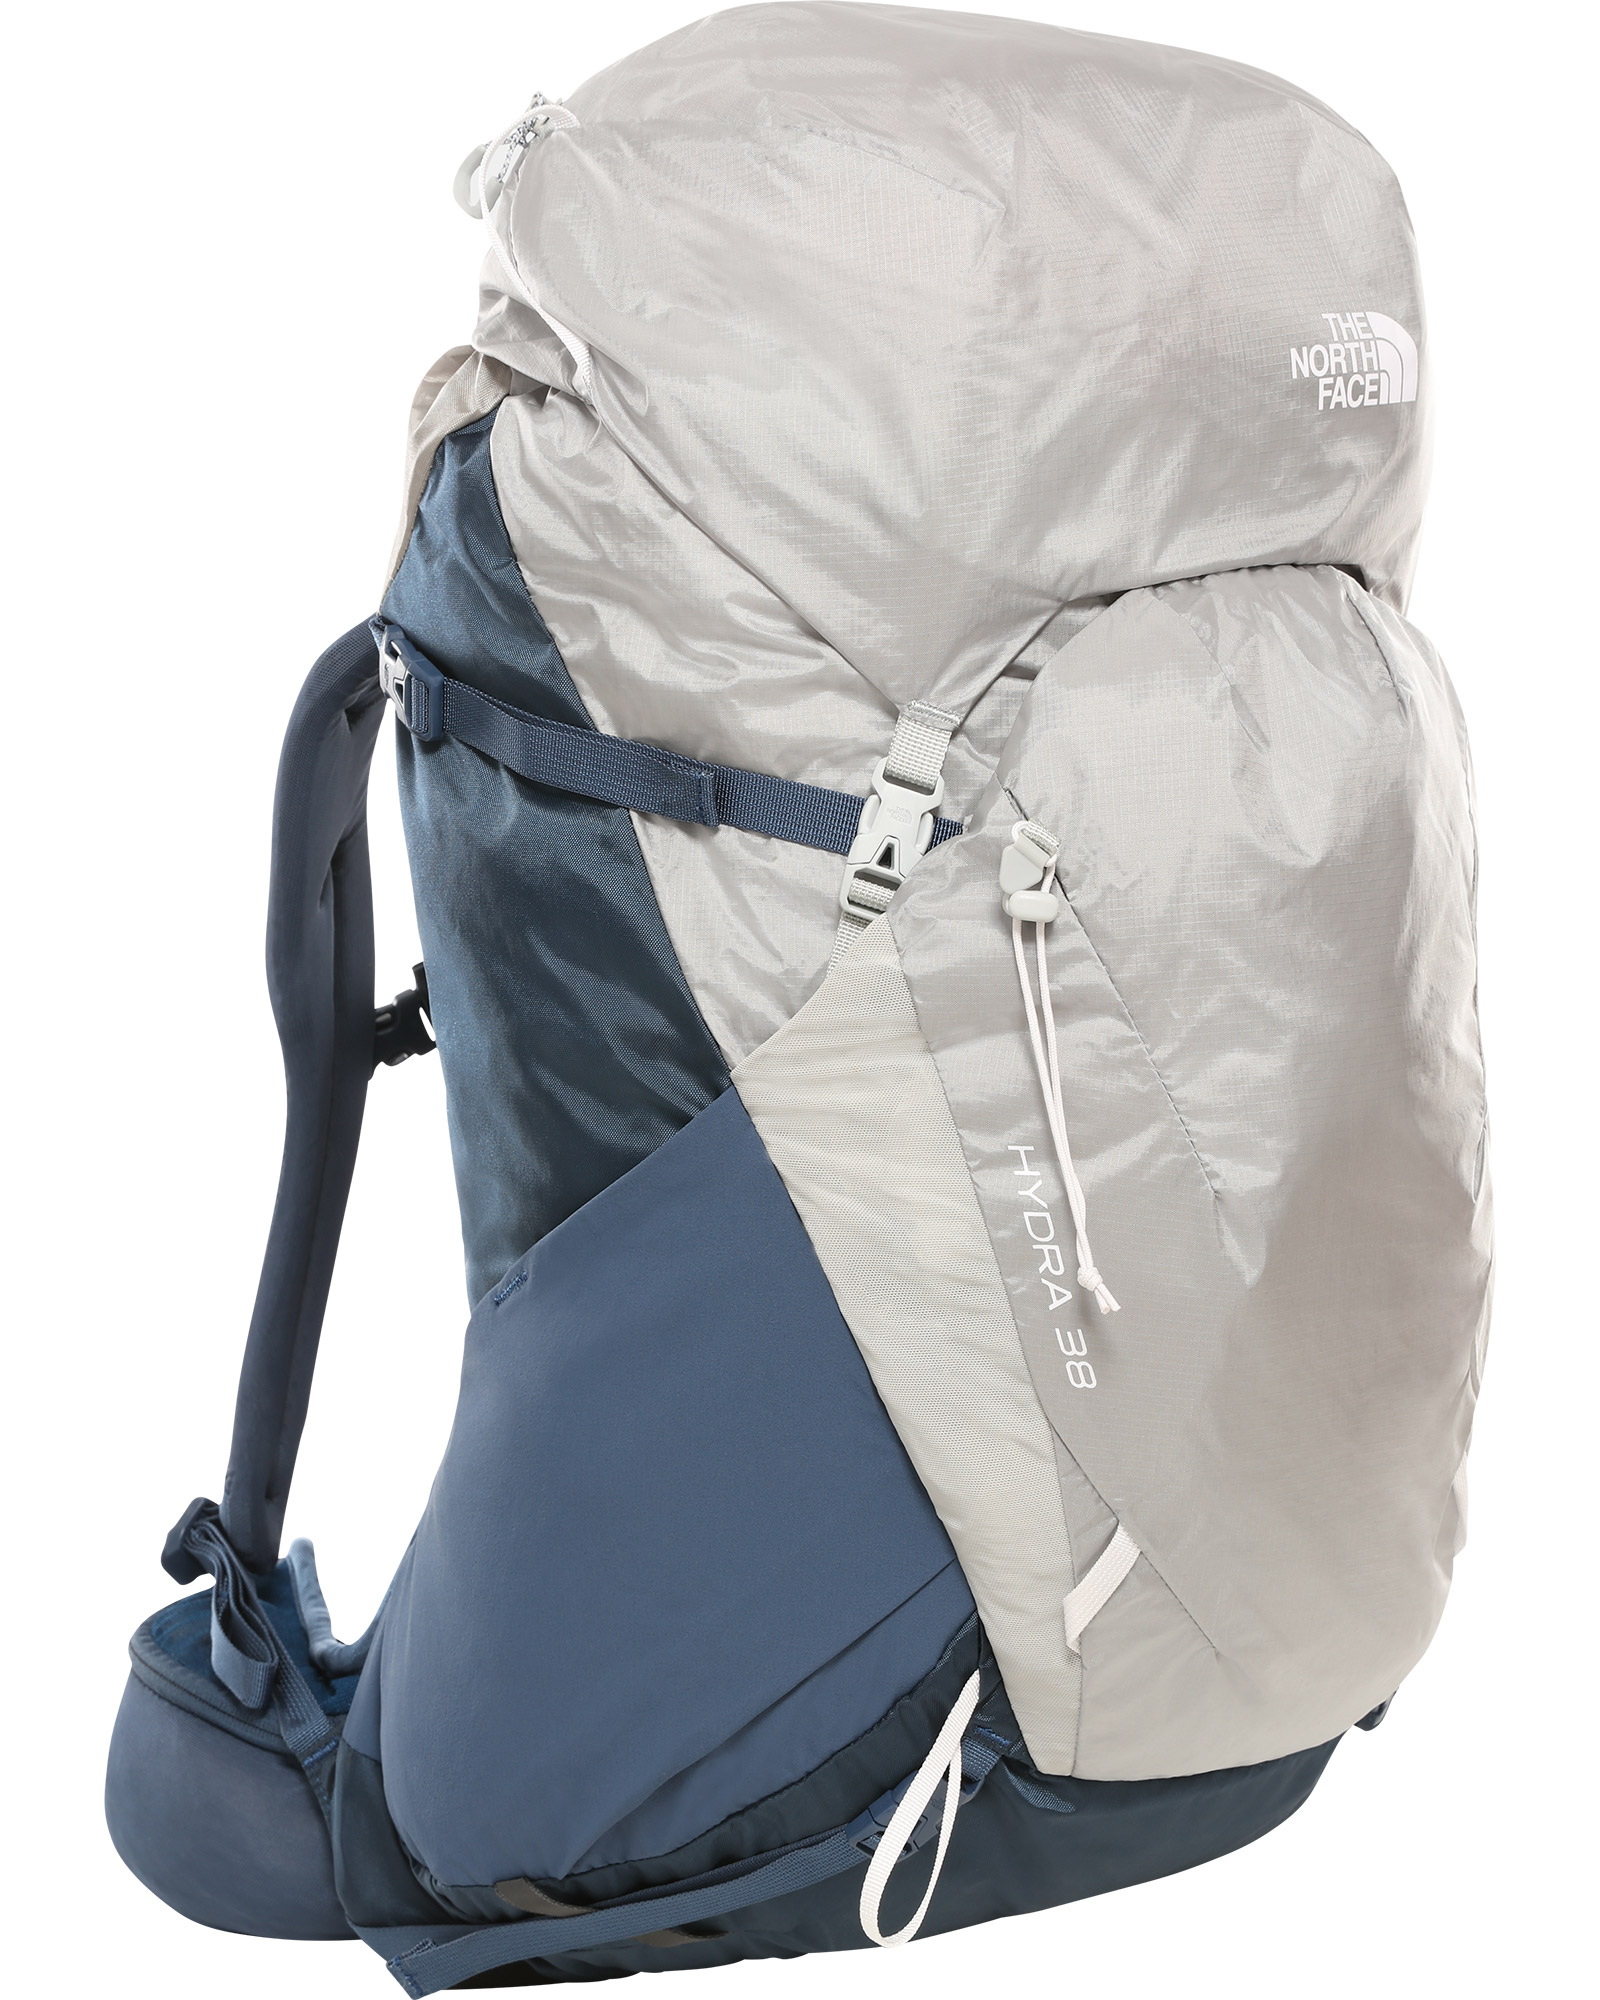 The North Face Women's Hydra 38 Backpack 0